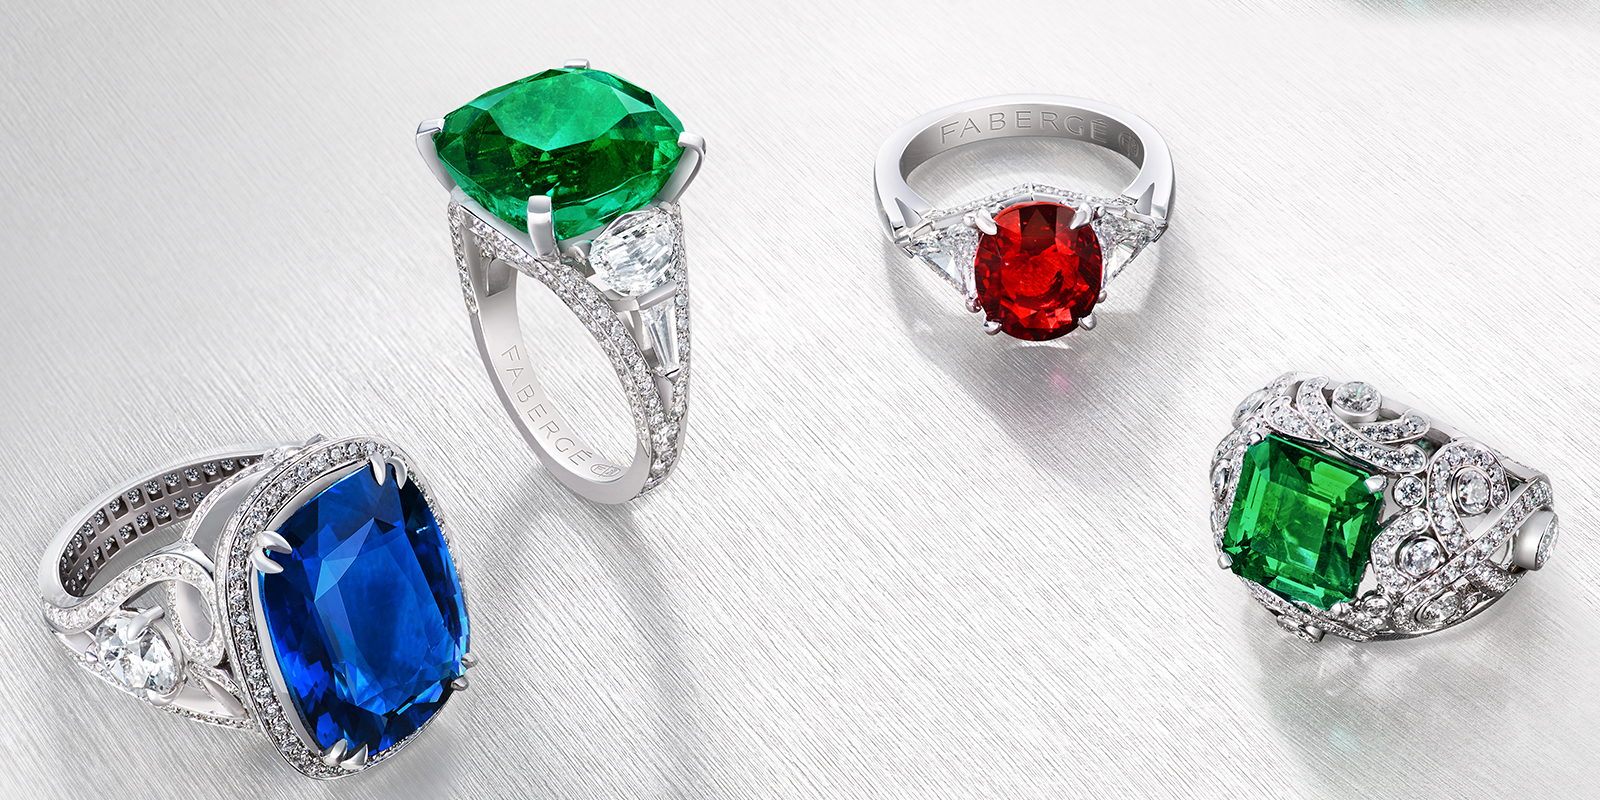 Four rings from the three colours of love collection. One blue sapphire and white diamonds ring, two green emerald and white diamonds rings, one red ruby and white diamonds ring.